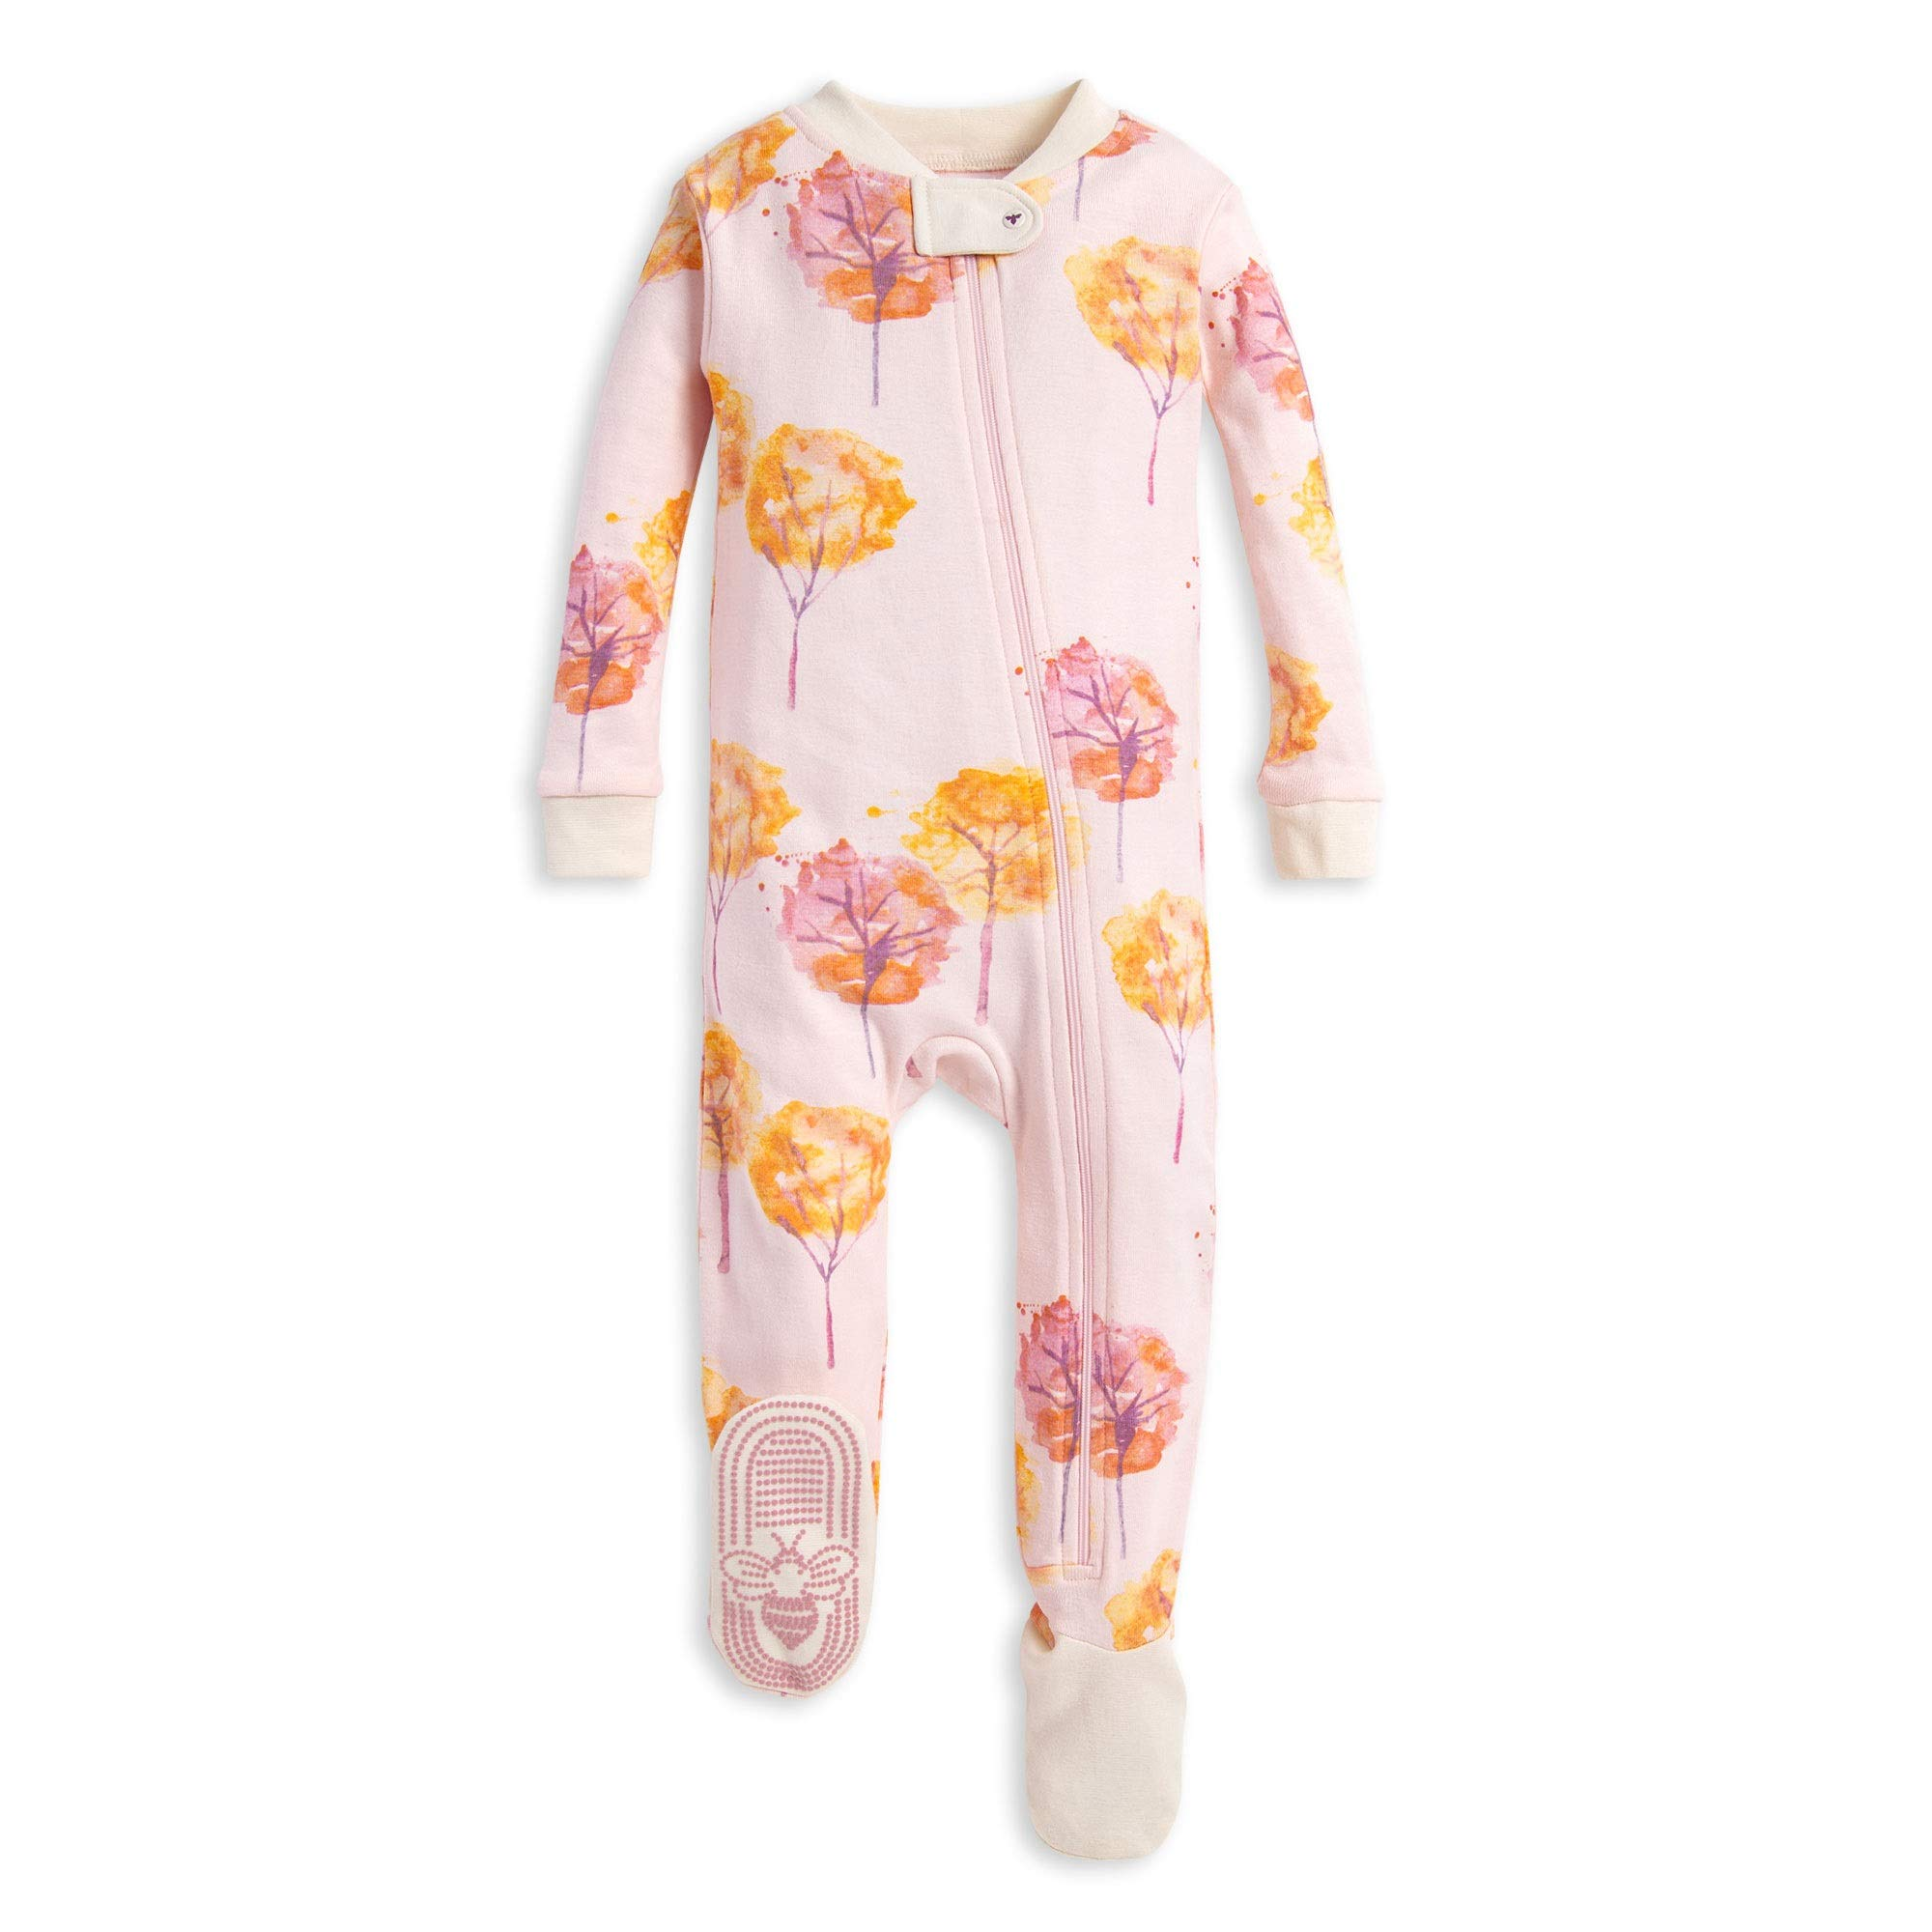 Burt's Bees Baby Baby Girls Pajamas, Zip Front Non-Slip Footed Sleeper PJs, 100% Organic Cotton, Fall Foliage, 18 Months by Burt's Bees Baby